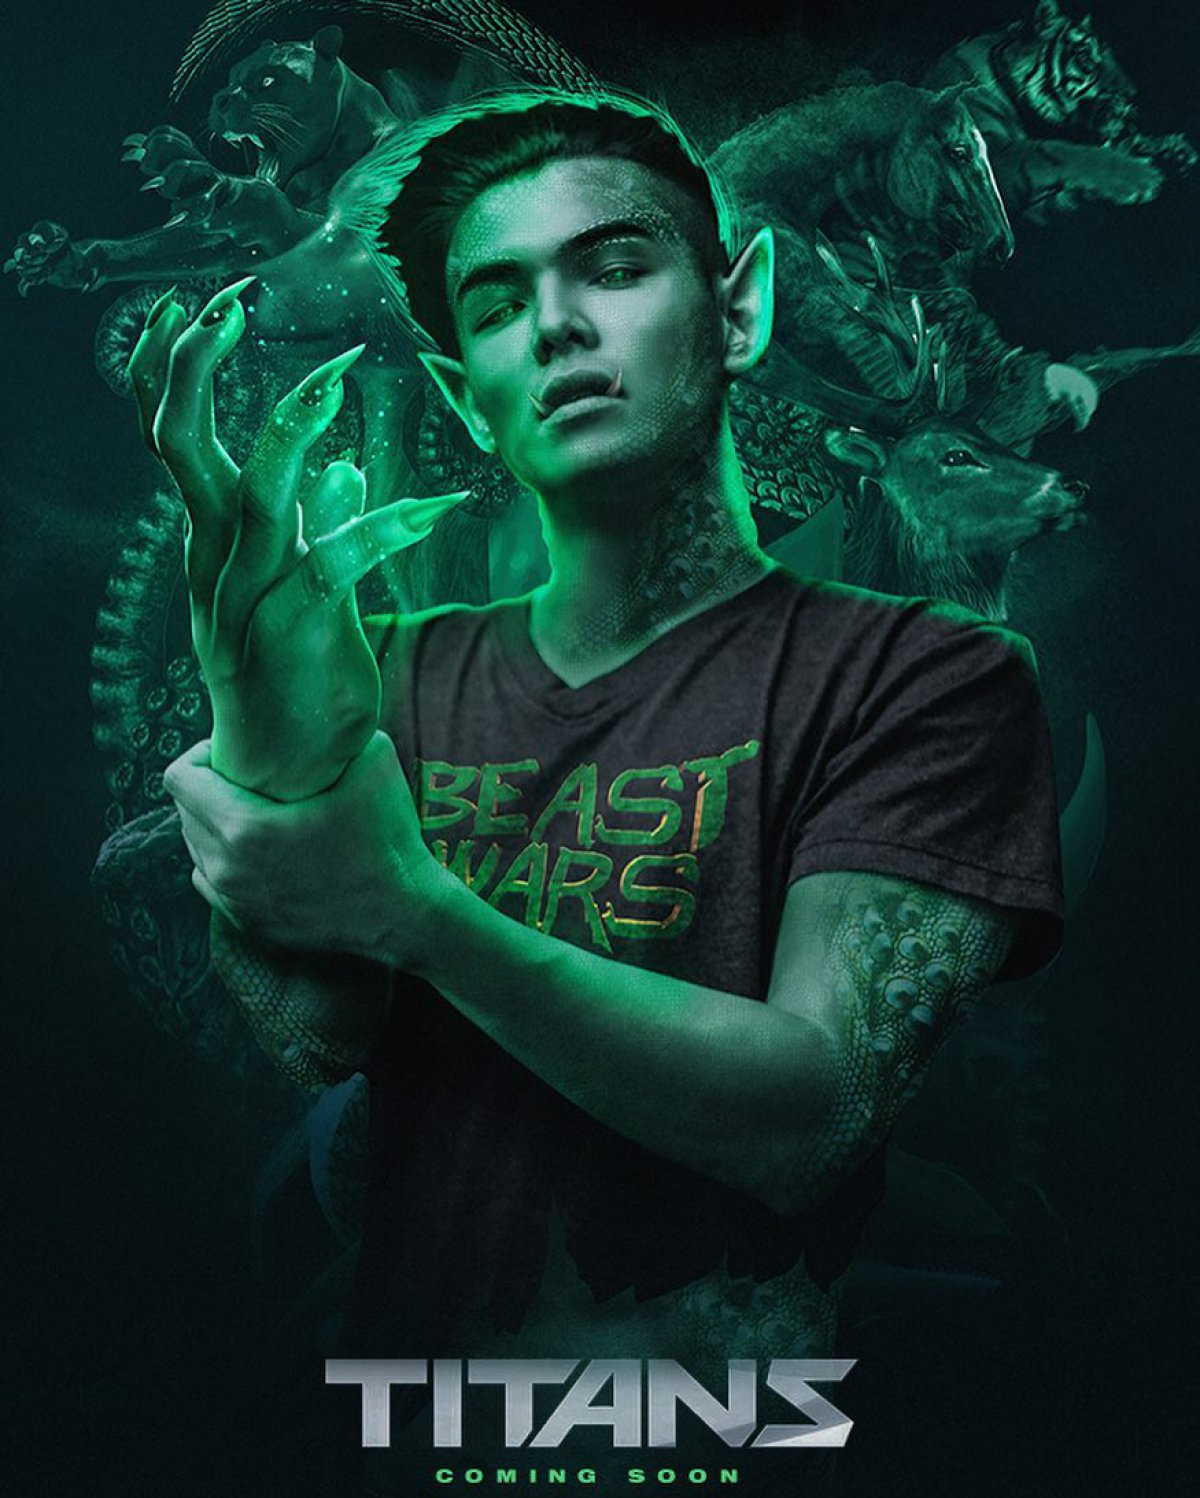 Joanna Chip Gaines Titans Tv Series Ryan Potter Cast As Beast Boy In